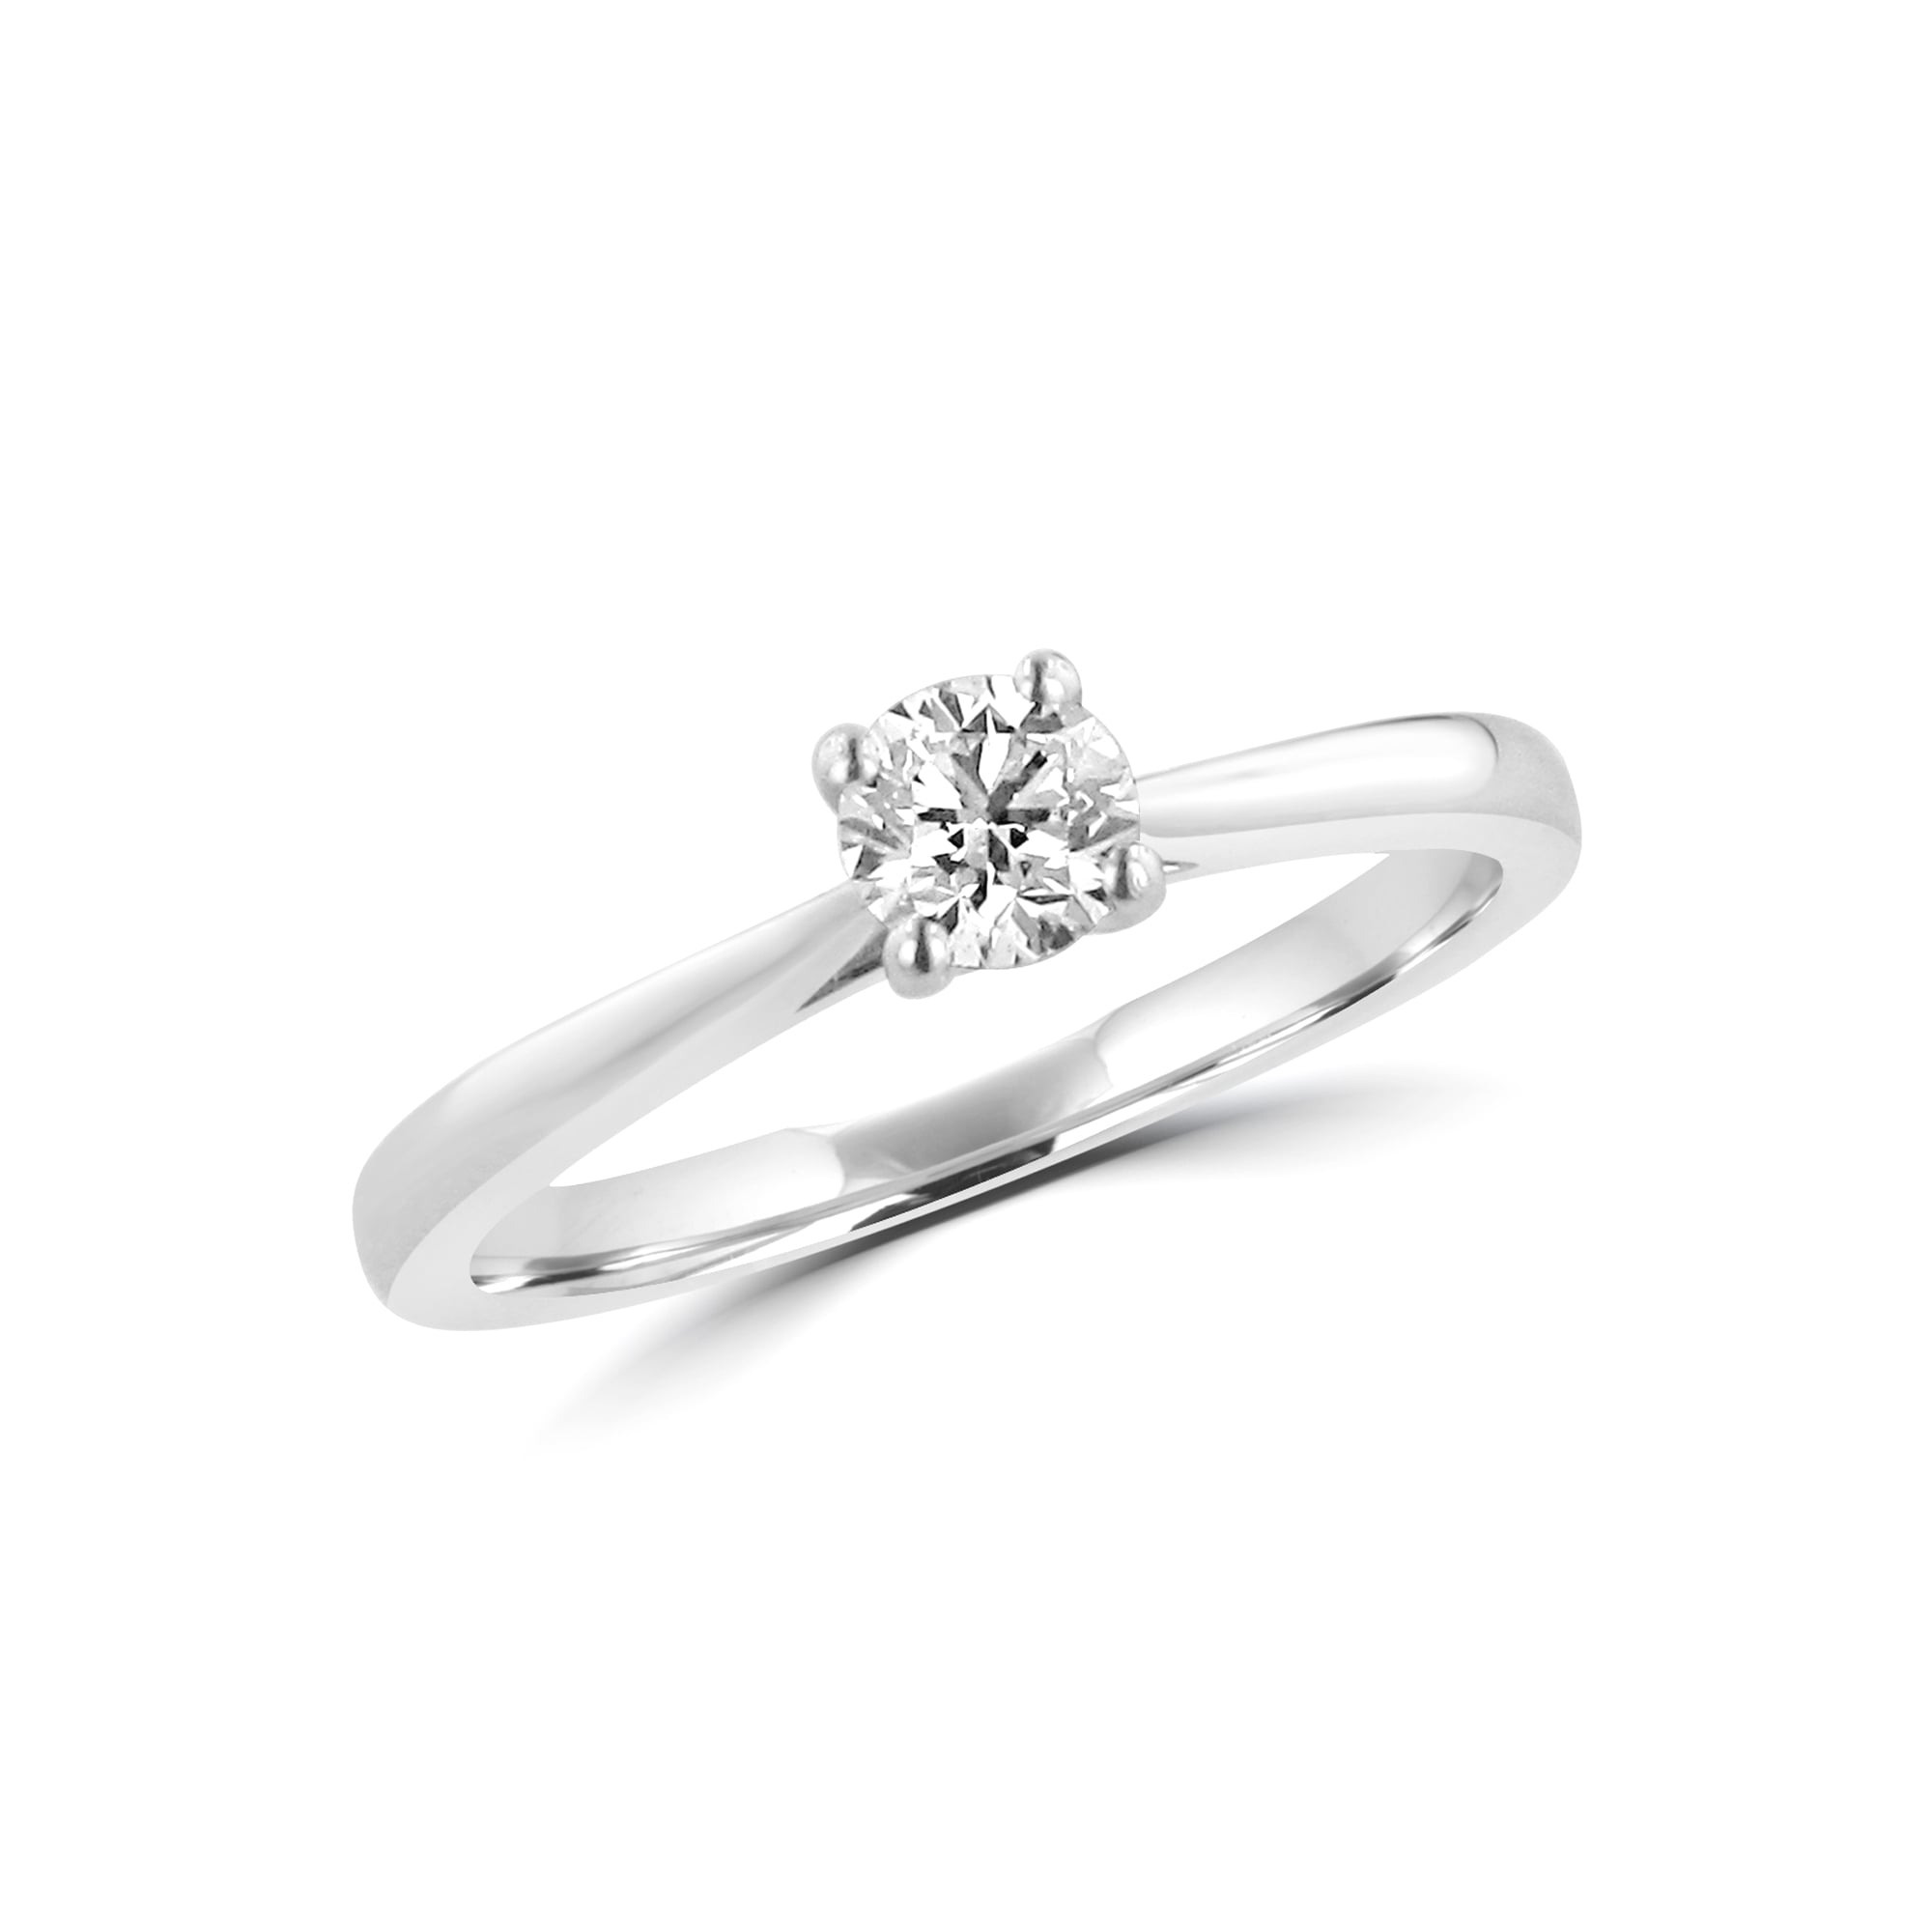 rafael geoghegan rings products ring designyard andrew engagement platinum diamond